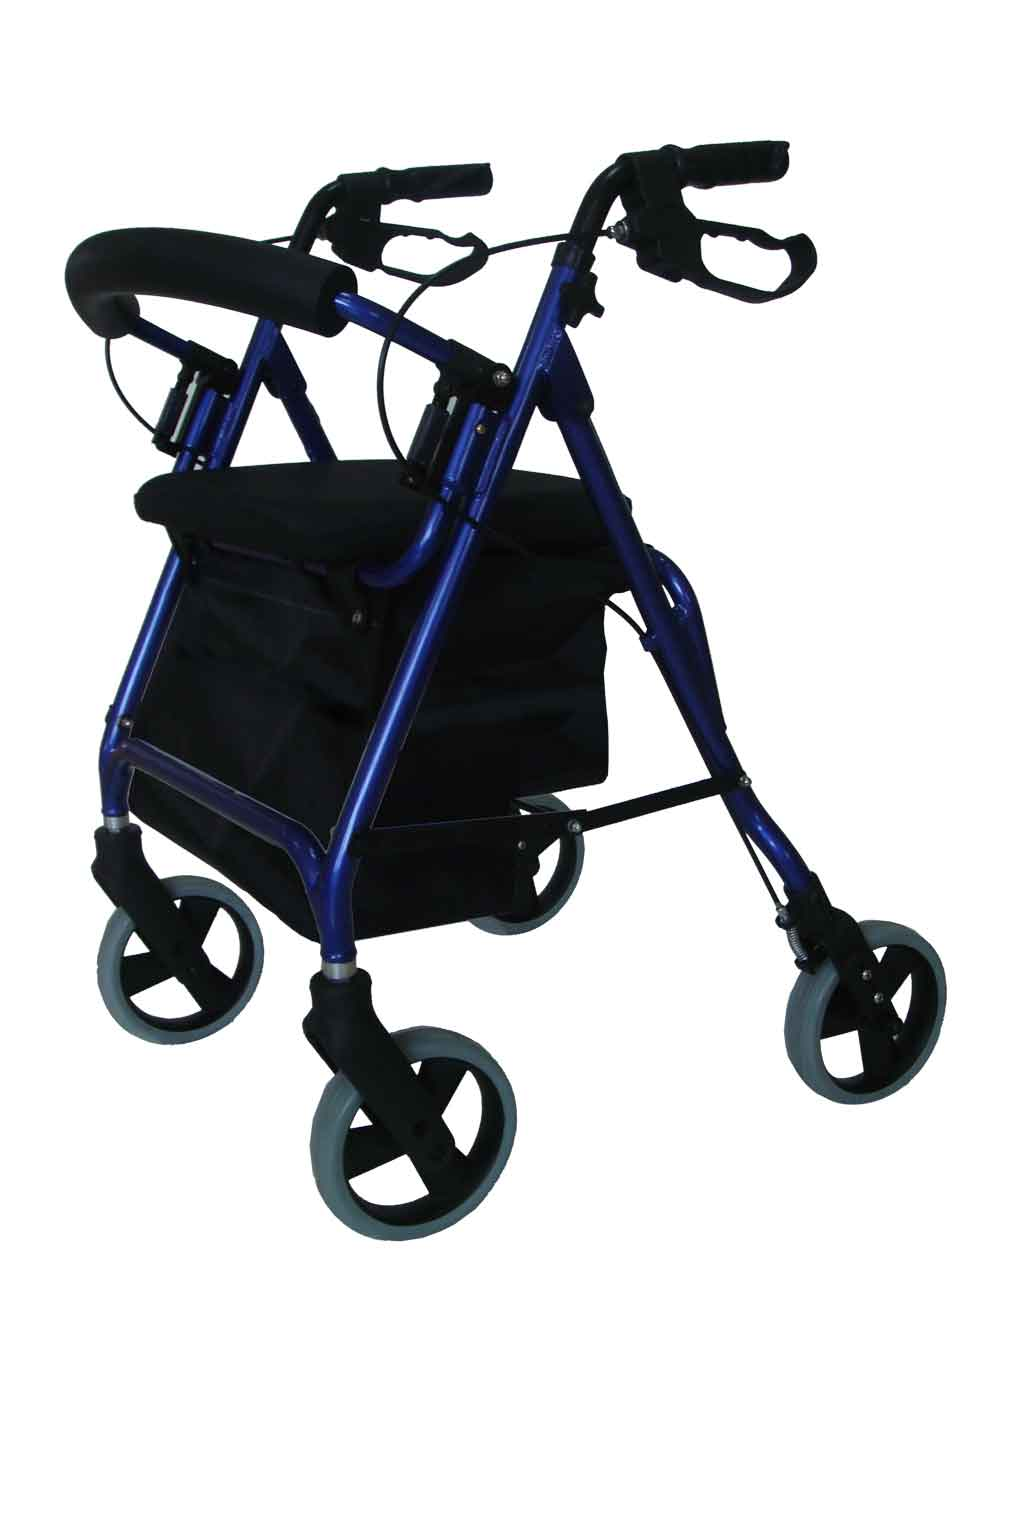 hugo rollators, medmobile rollators, wide rollators with seat, lumex hybrid x rollator